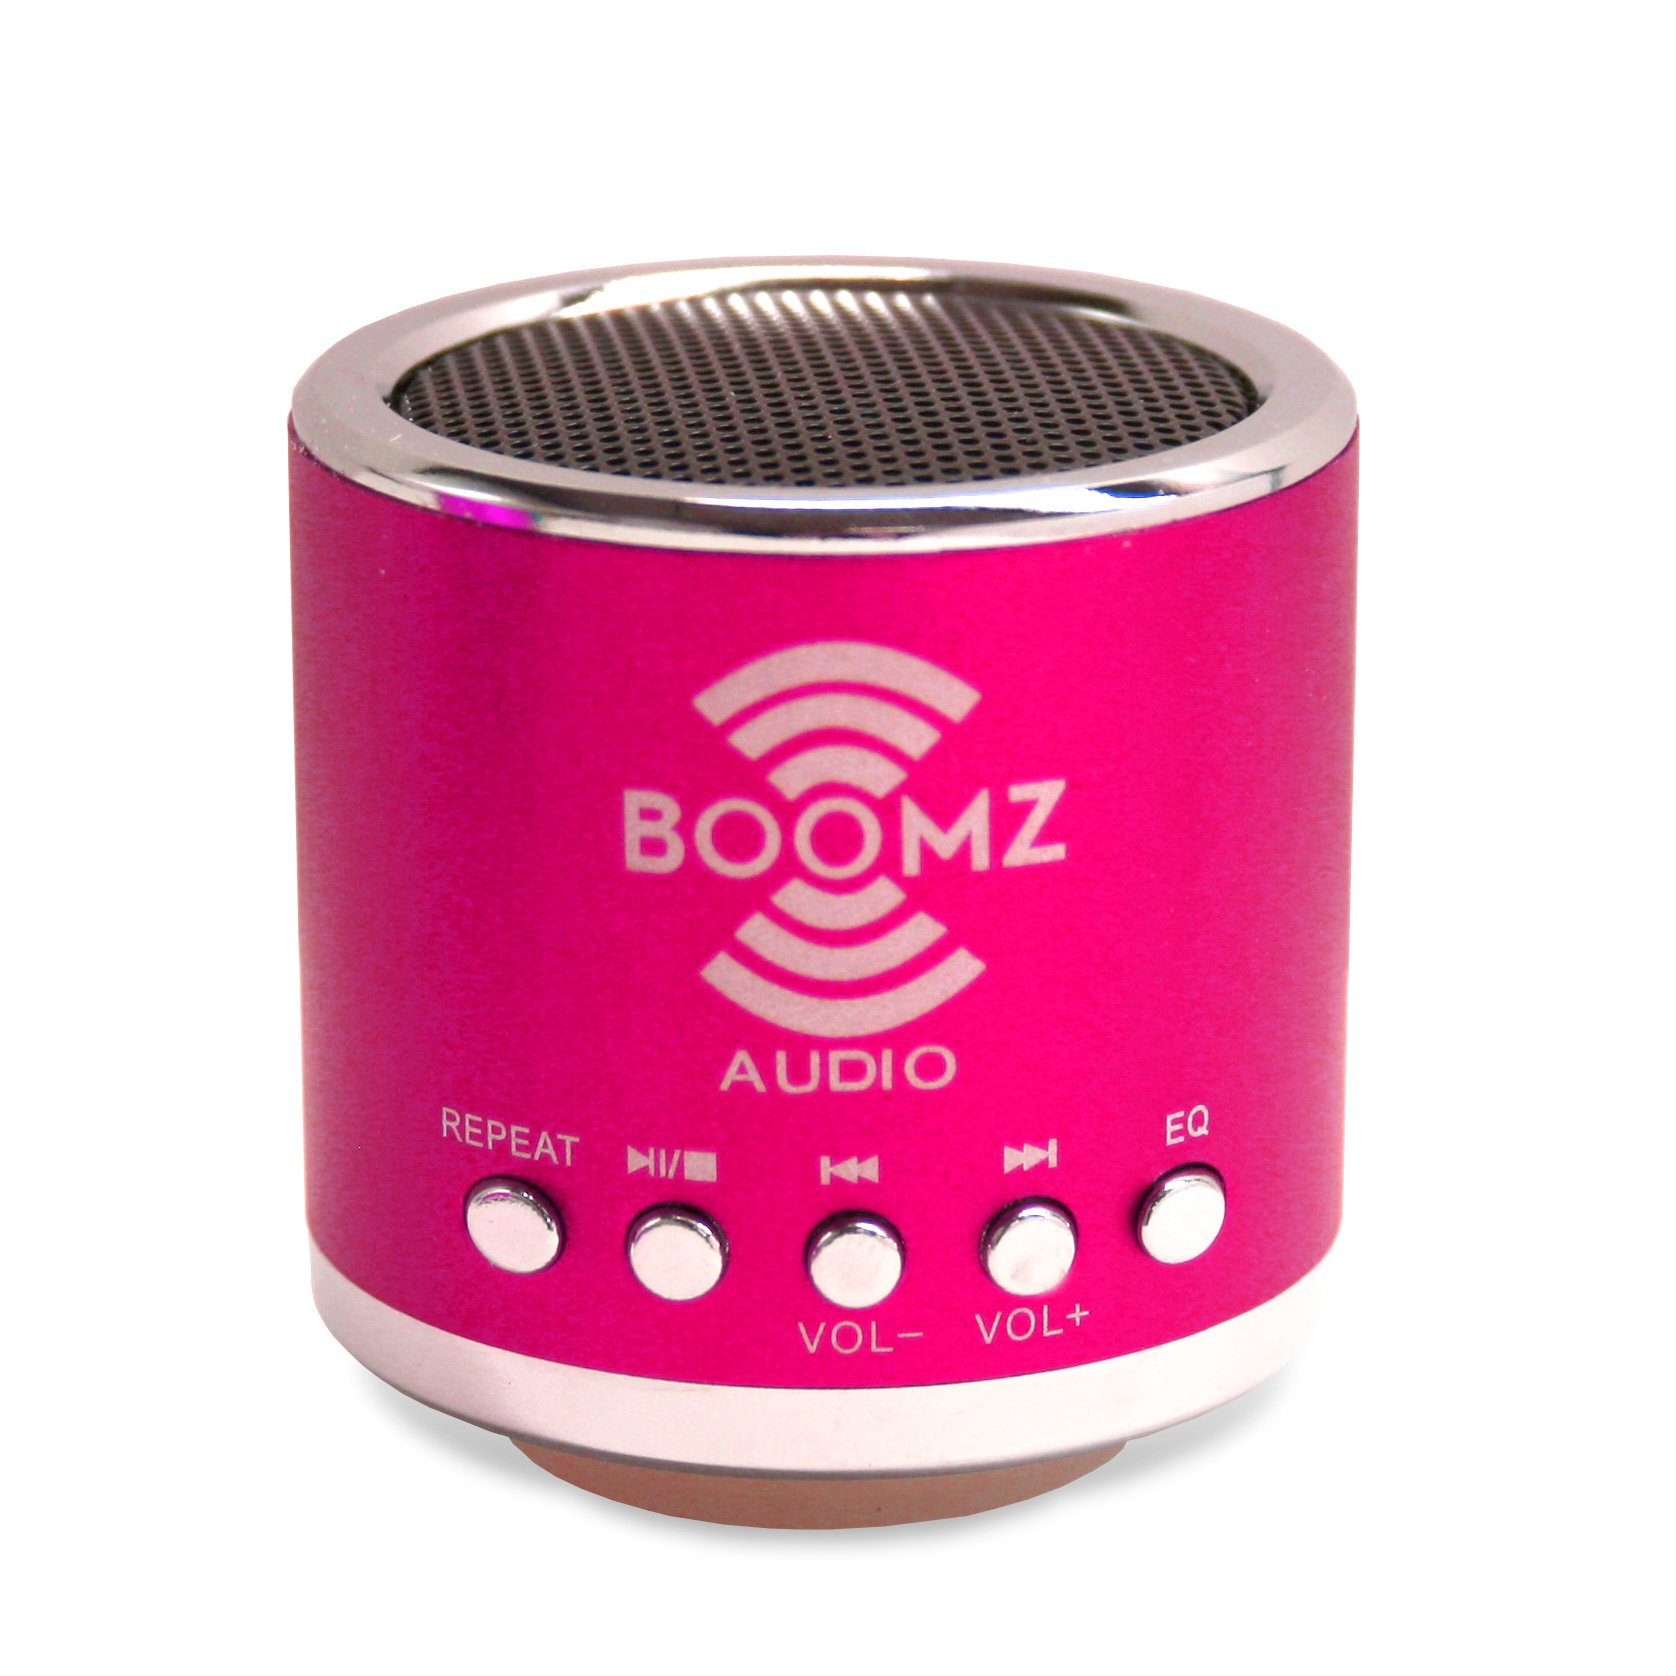 BOOMZ Audio powerful mini MP3 Player/Speaker (pink) for Cellphone / Smartphone /Android Phone by Generic